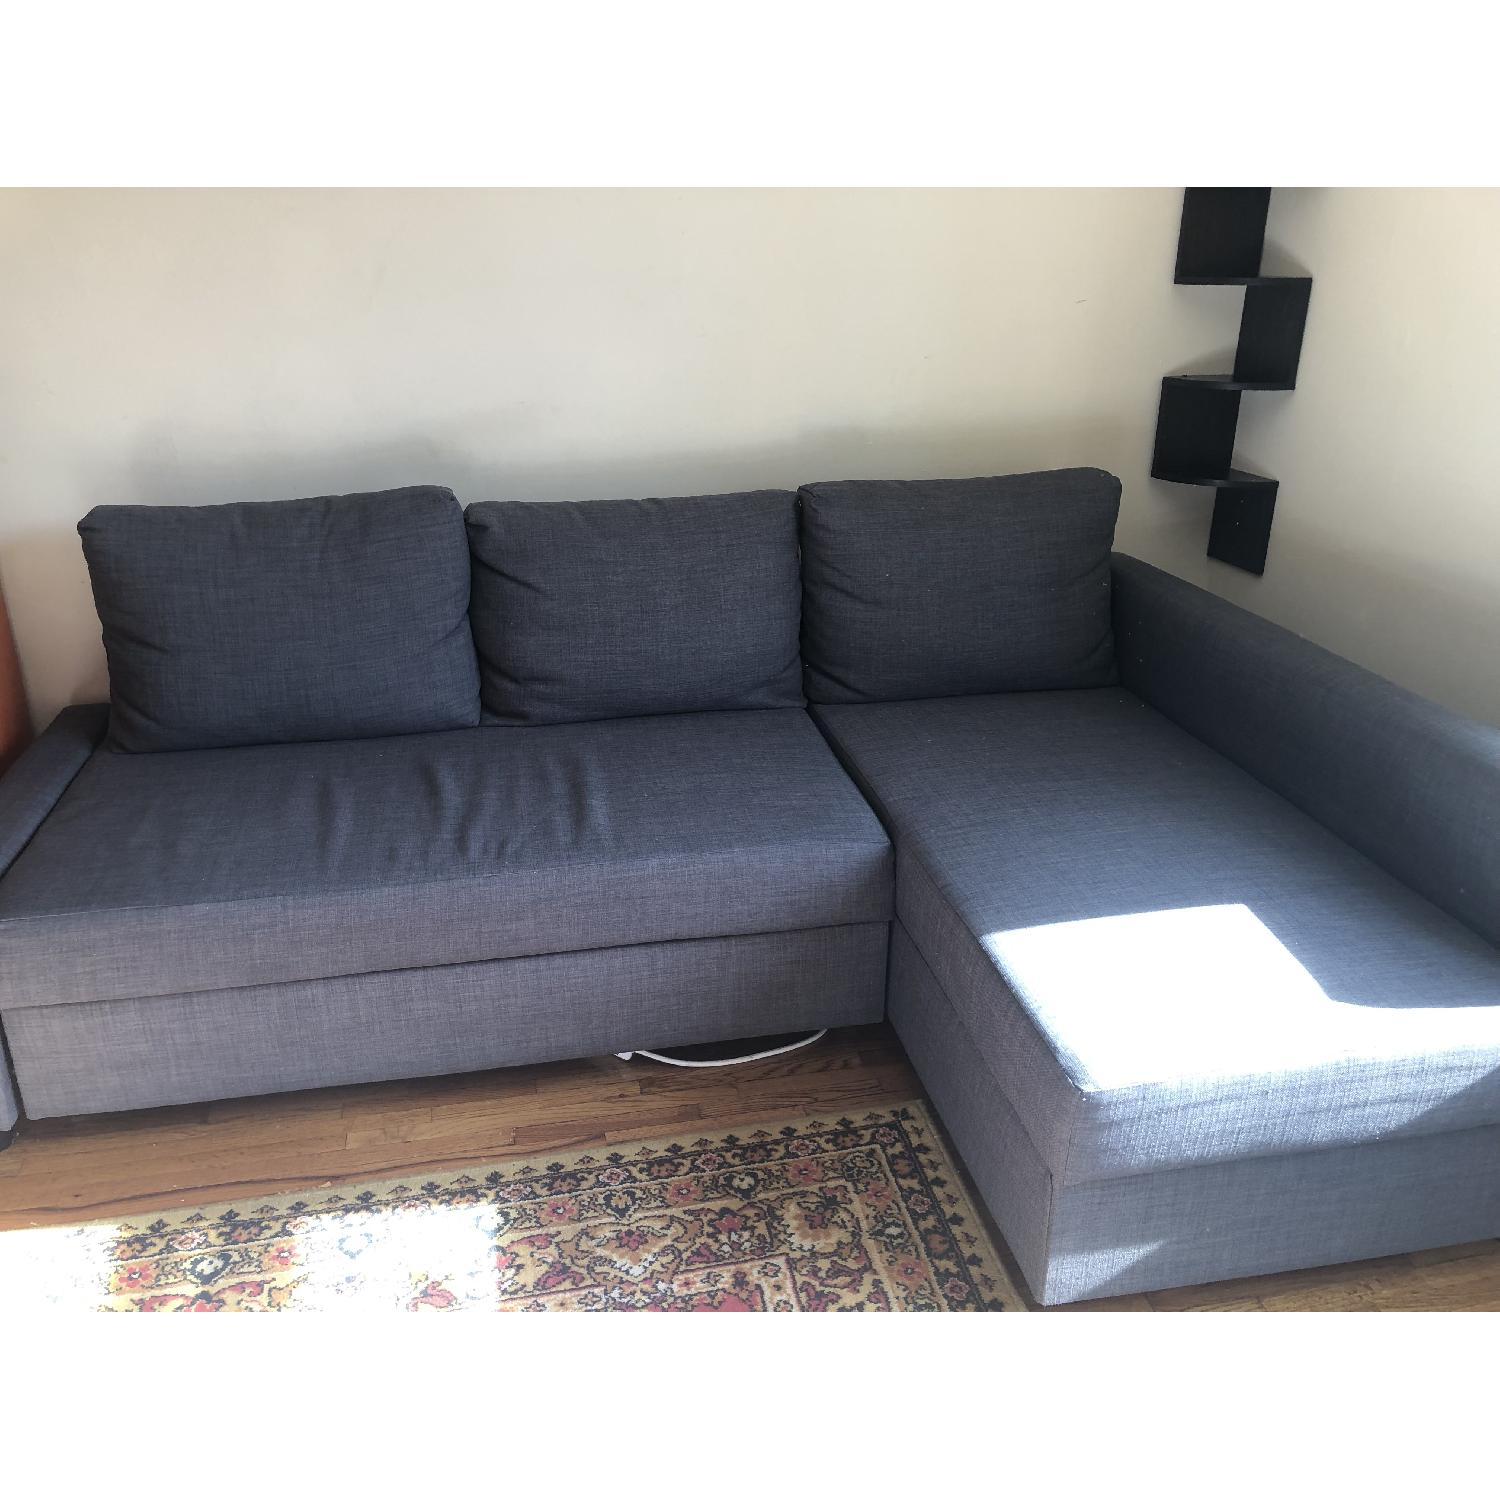 Bettsofa Ikea Friheten Ikea Friheten Sleeper Sectional Sofa W Storage